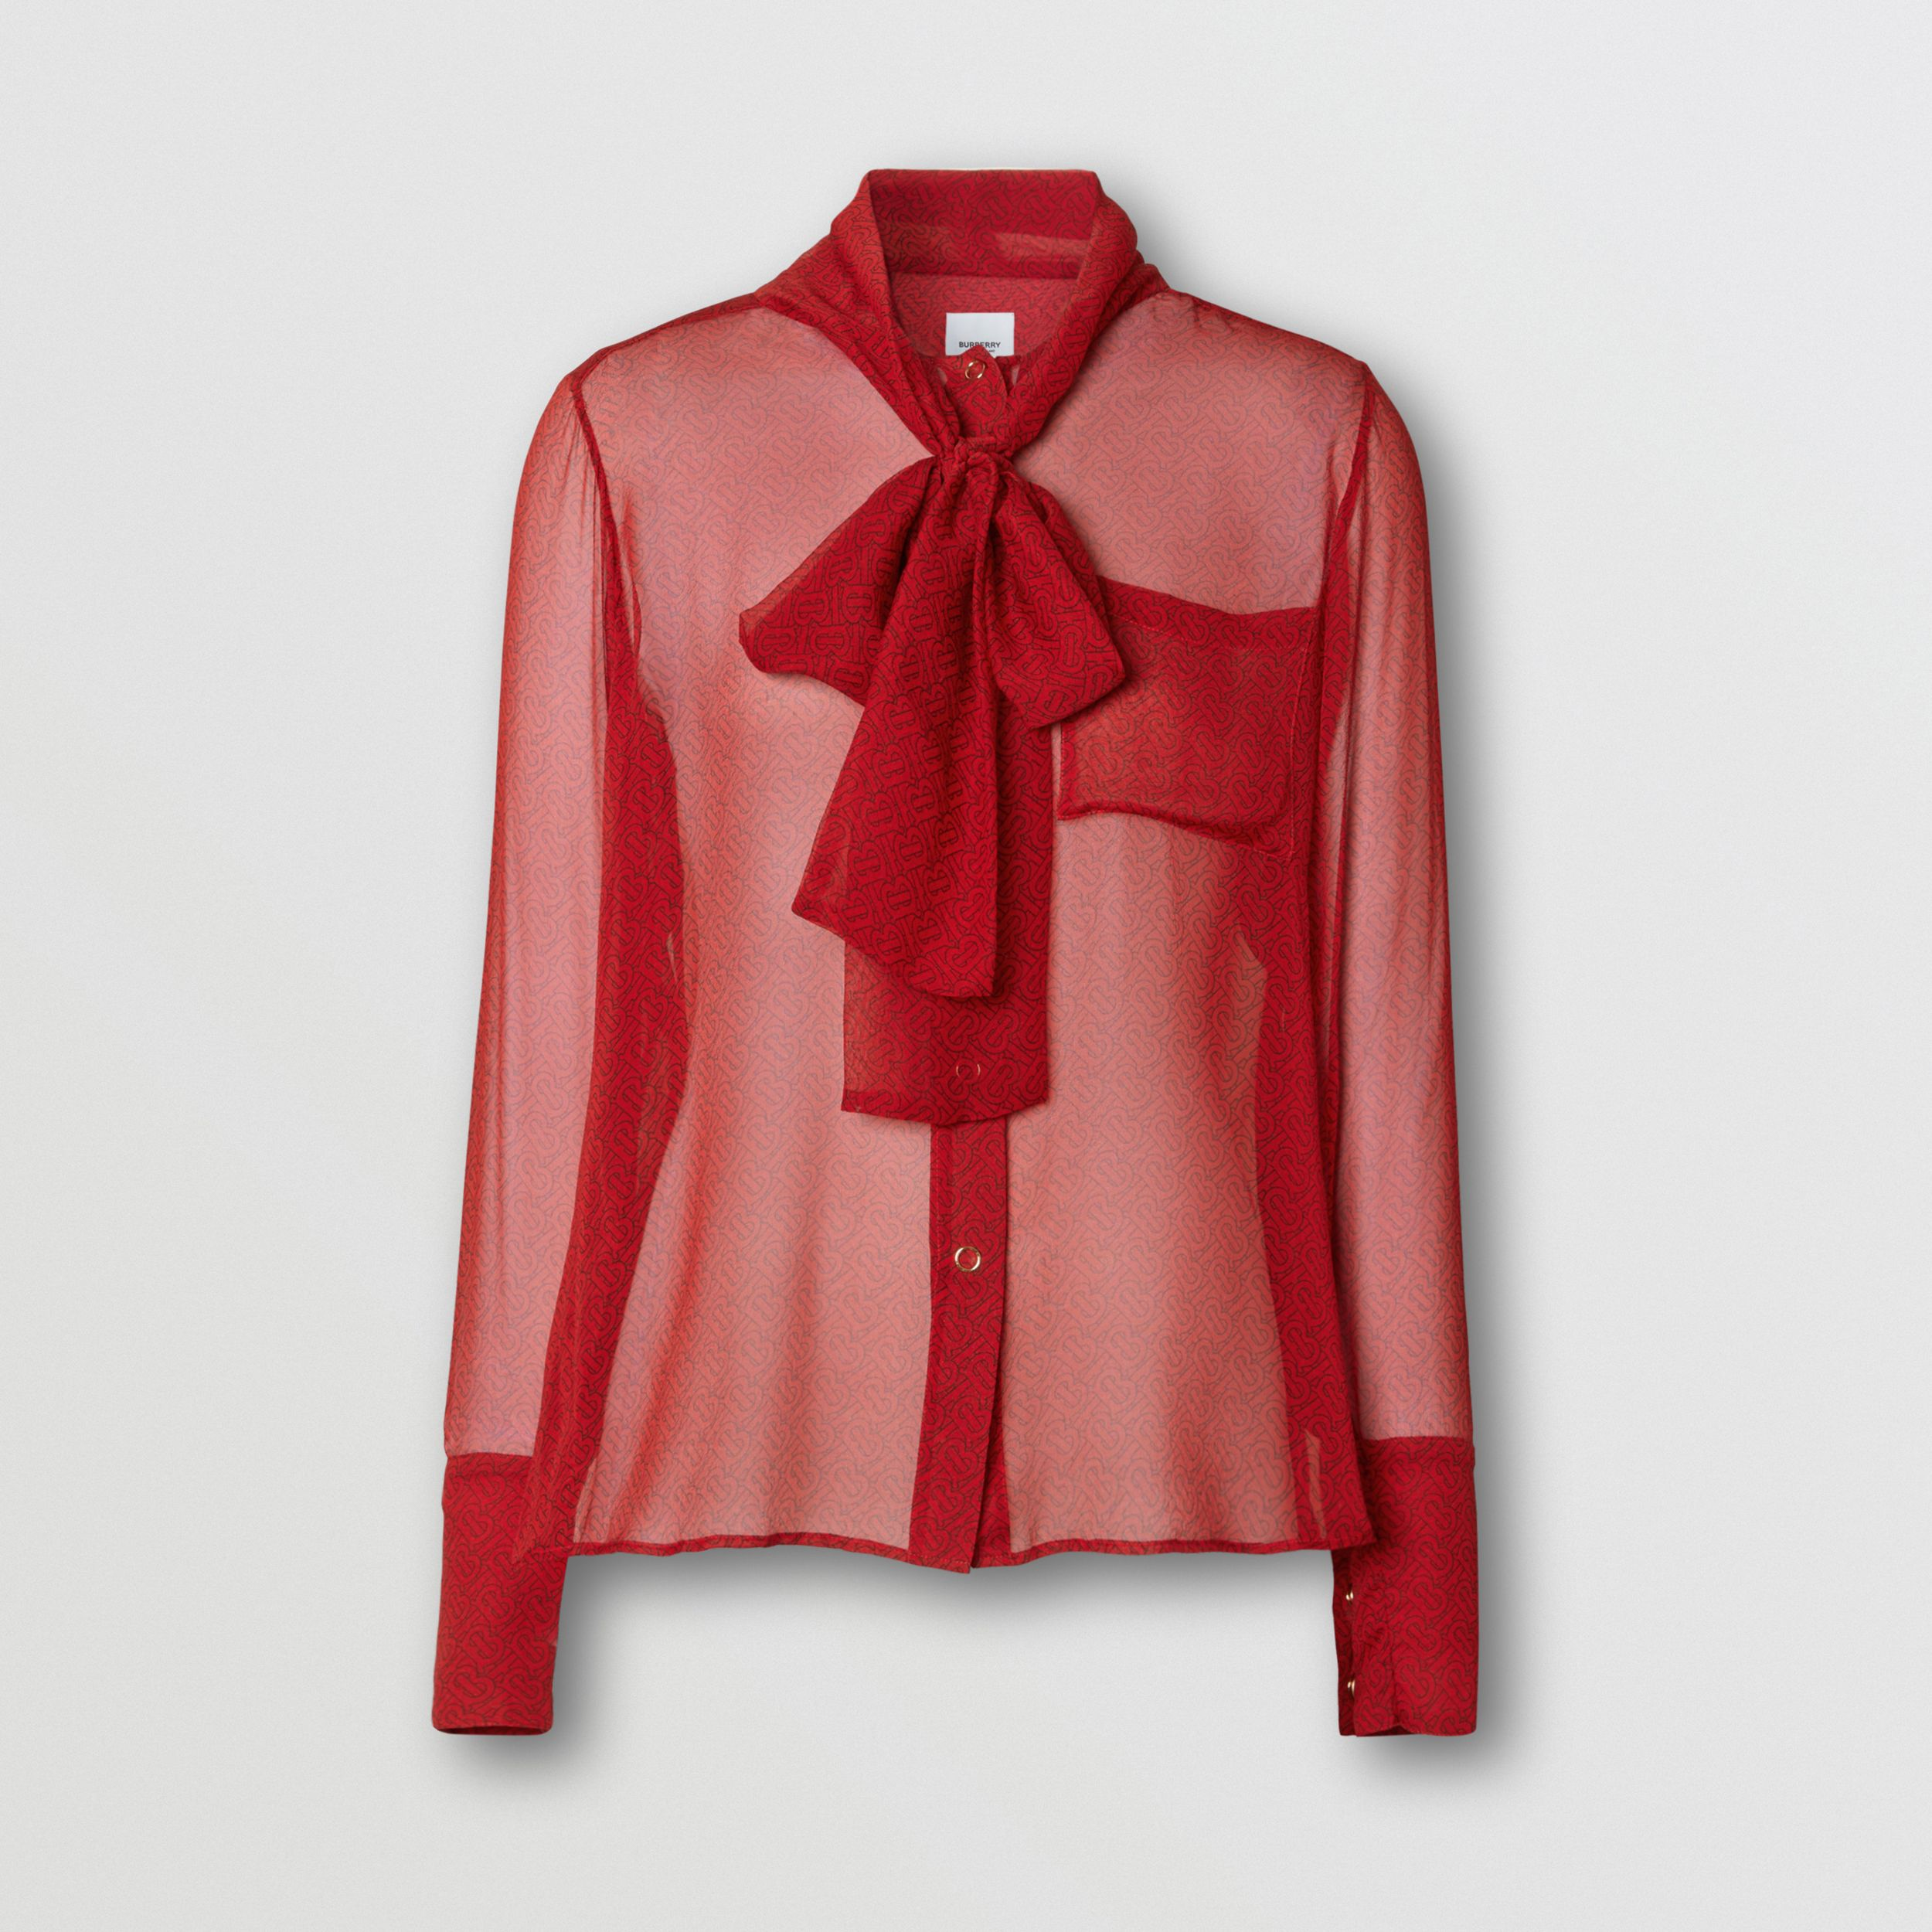 Monogram Print Silk Chiffon Pussy-bow Blouse in Bright Red - Women | Burberry - 4